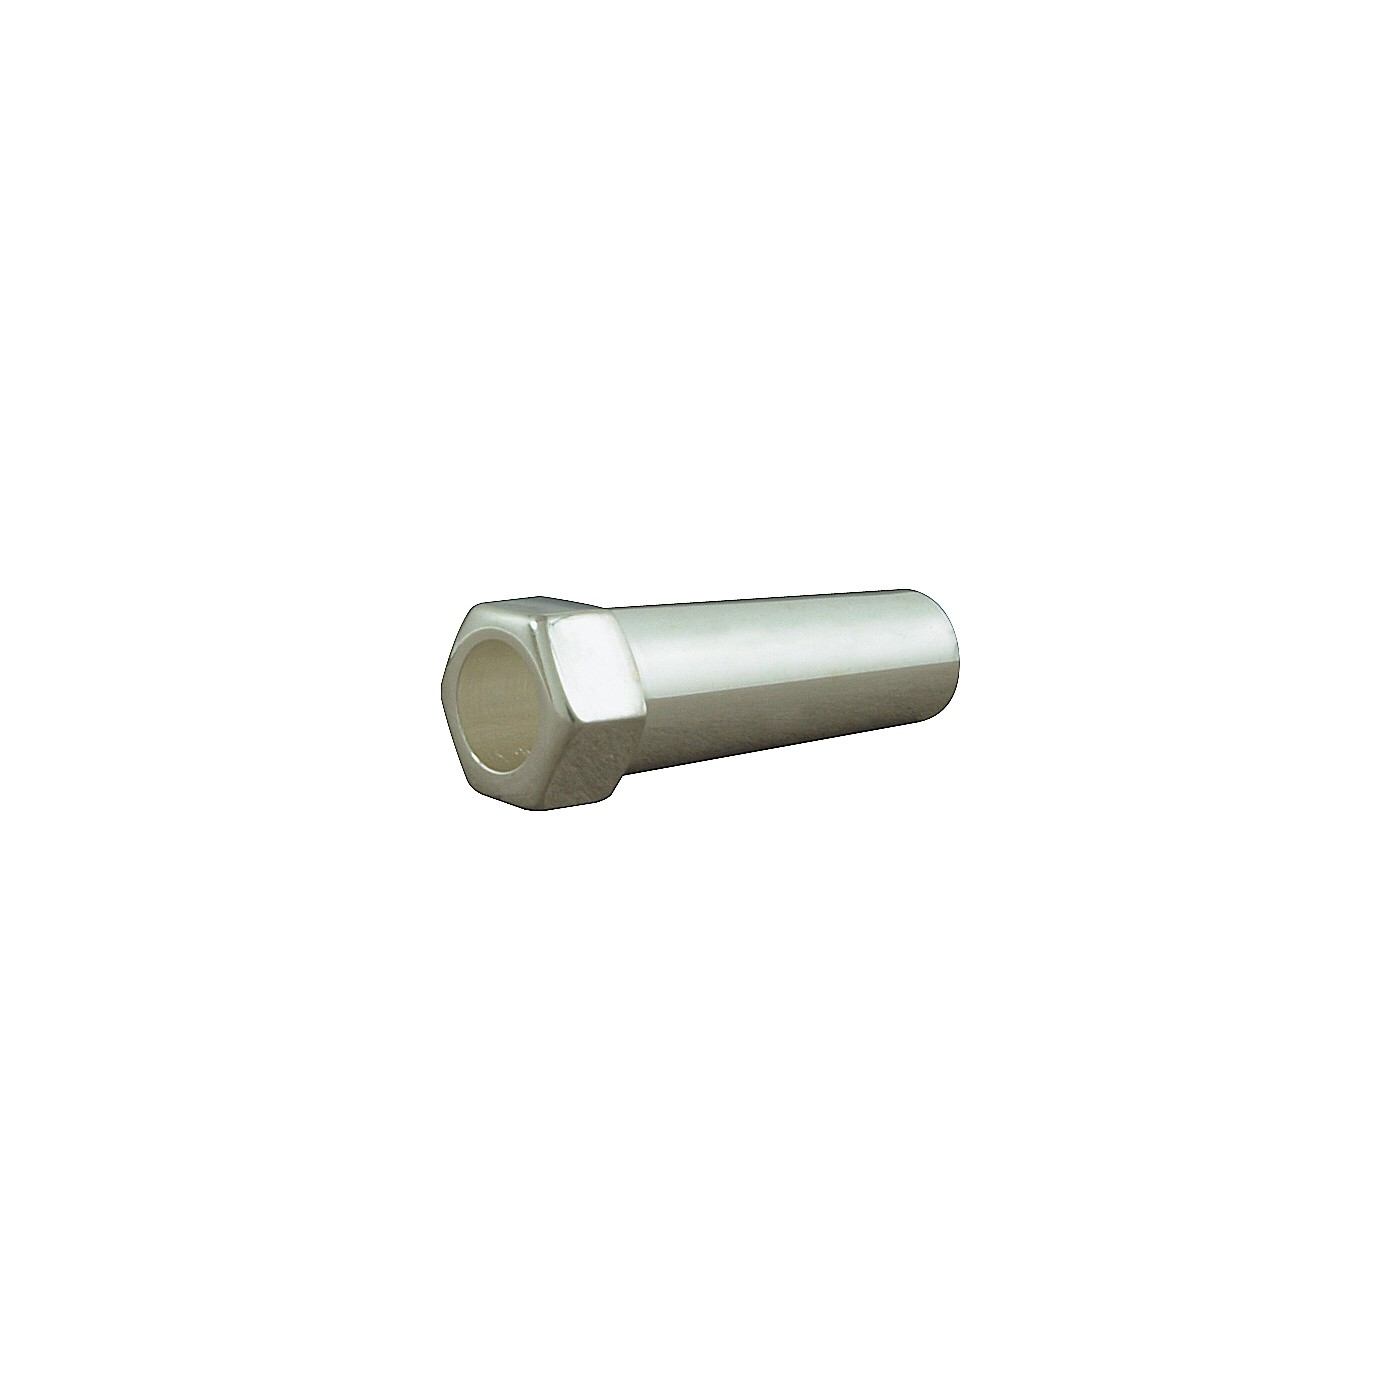 Bach S385 French Horn Mouthpiece Adapter thumbnail